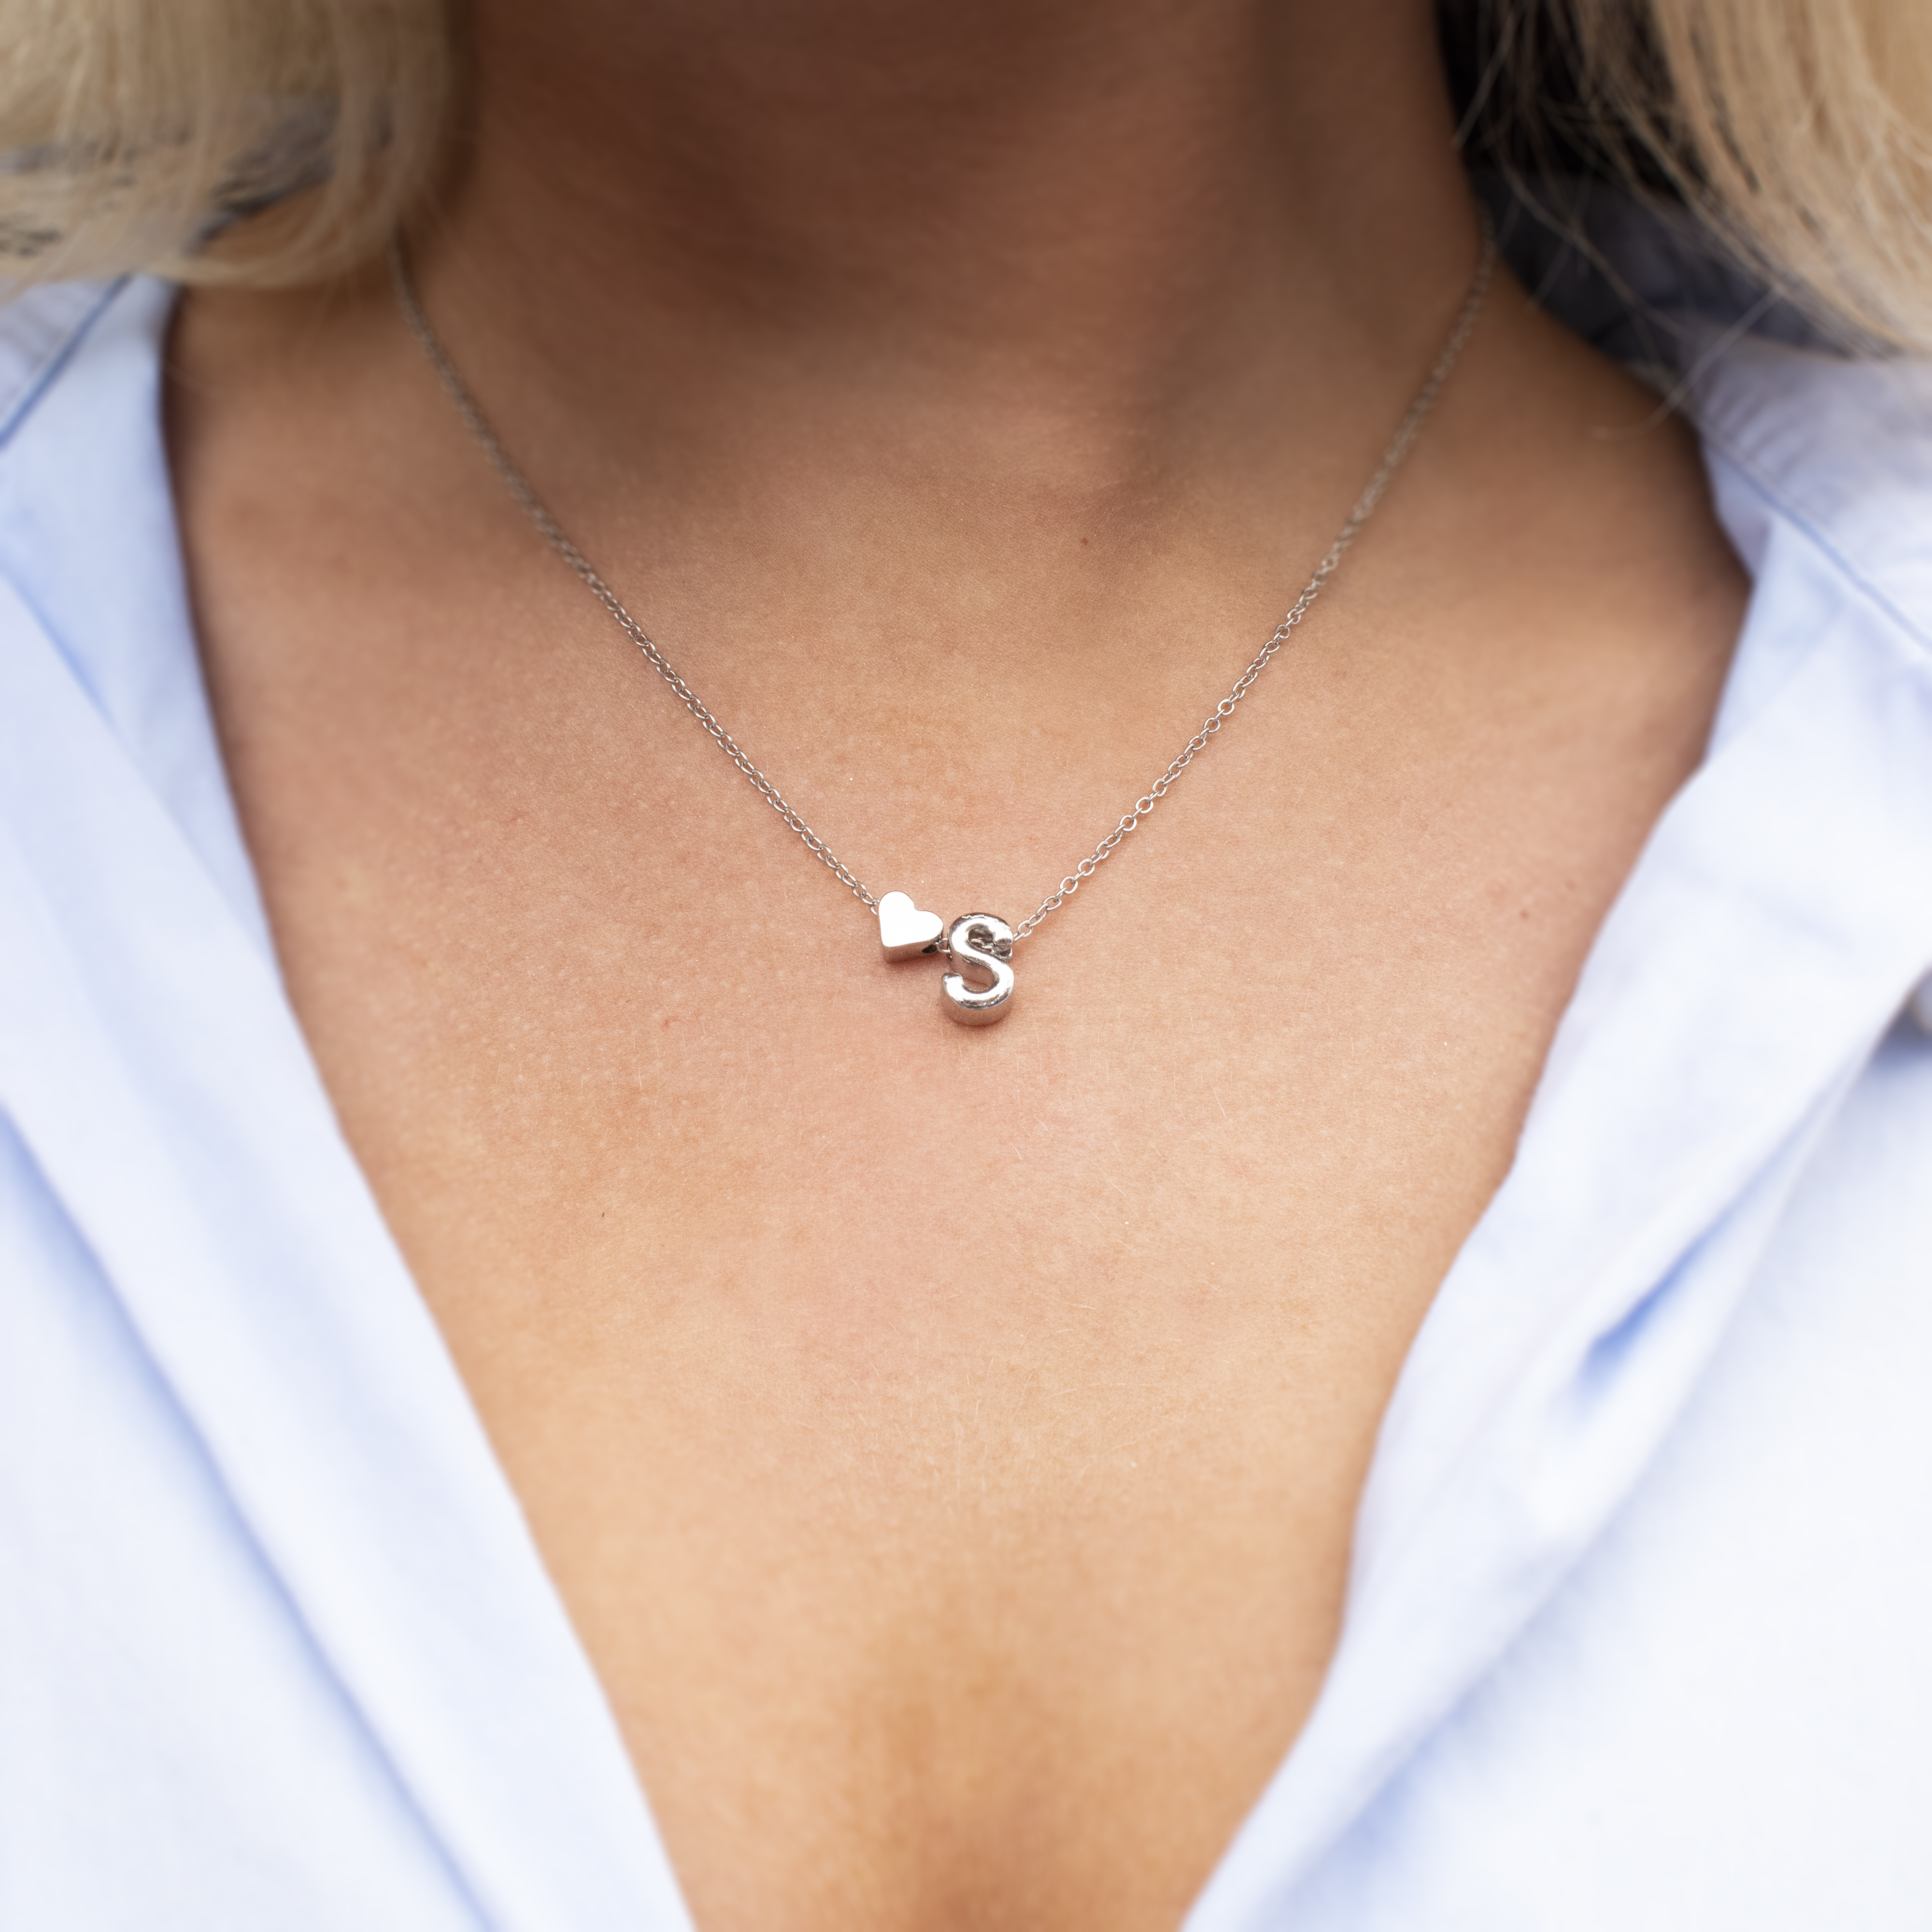 LOVE HEART INITIAL NECKLACES